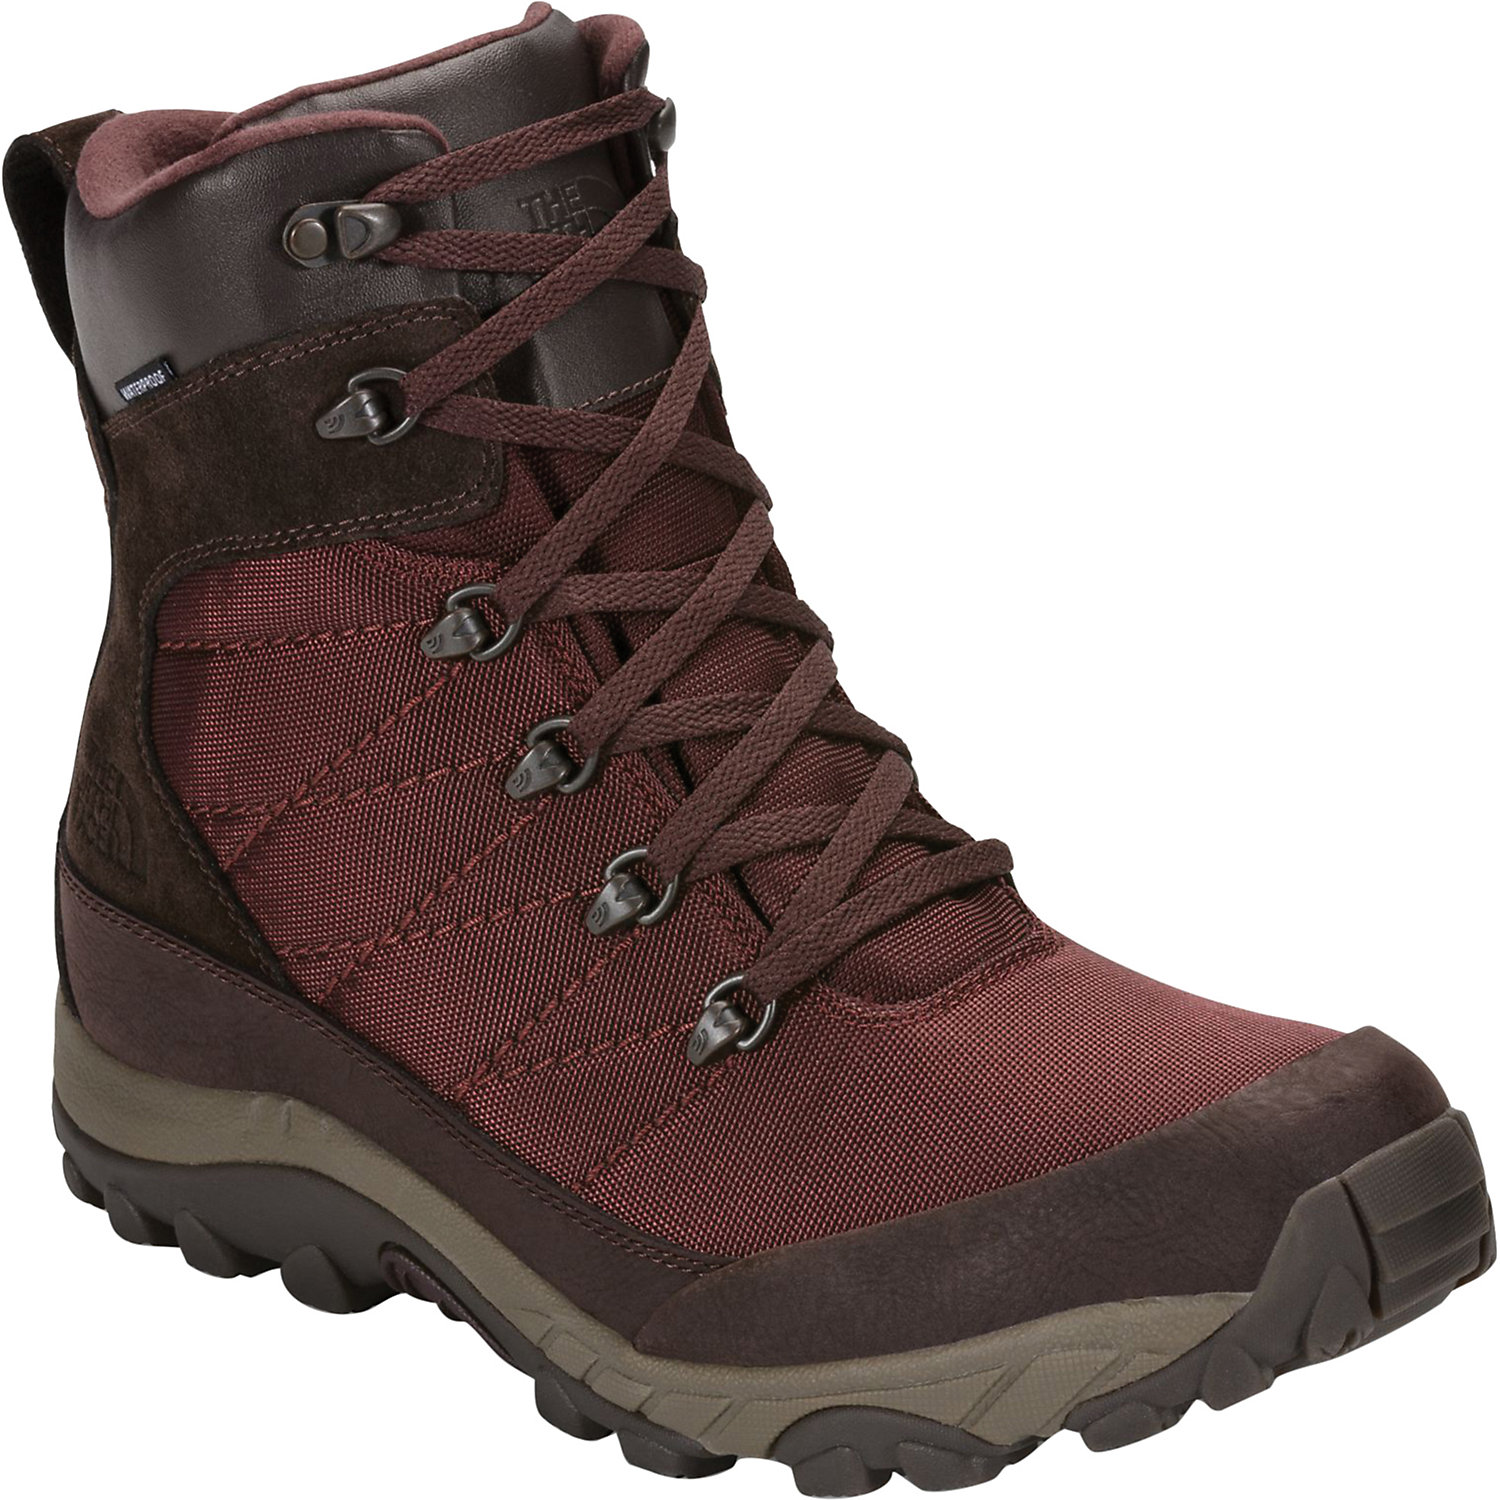 5a401198b The North Face Men's Chilkat Nylon Boot